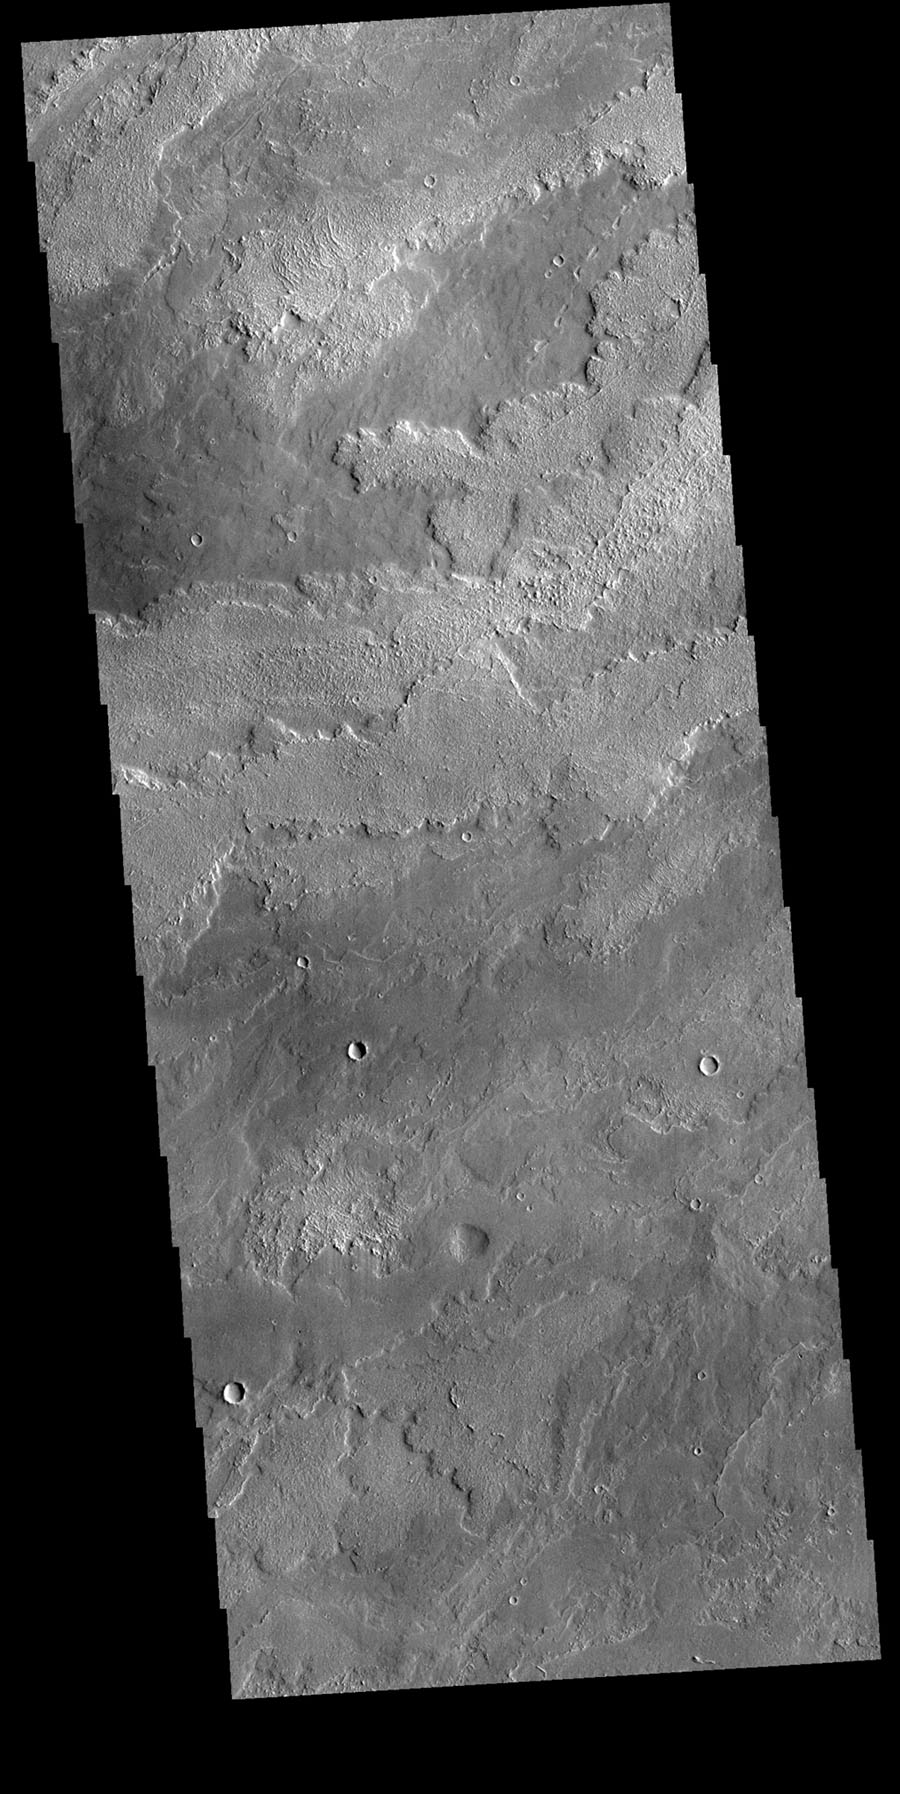 This image from NASA's Mars Odyssey shows the lava flows originating at Arsia Mons. Arsia Mons in the southermost of the three large Tharsis volcanoes.